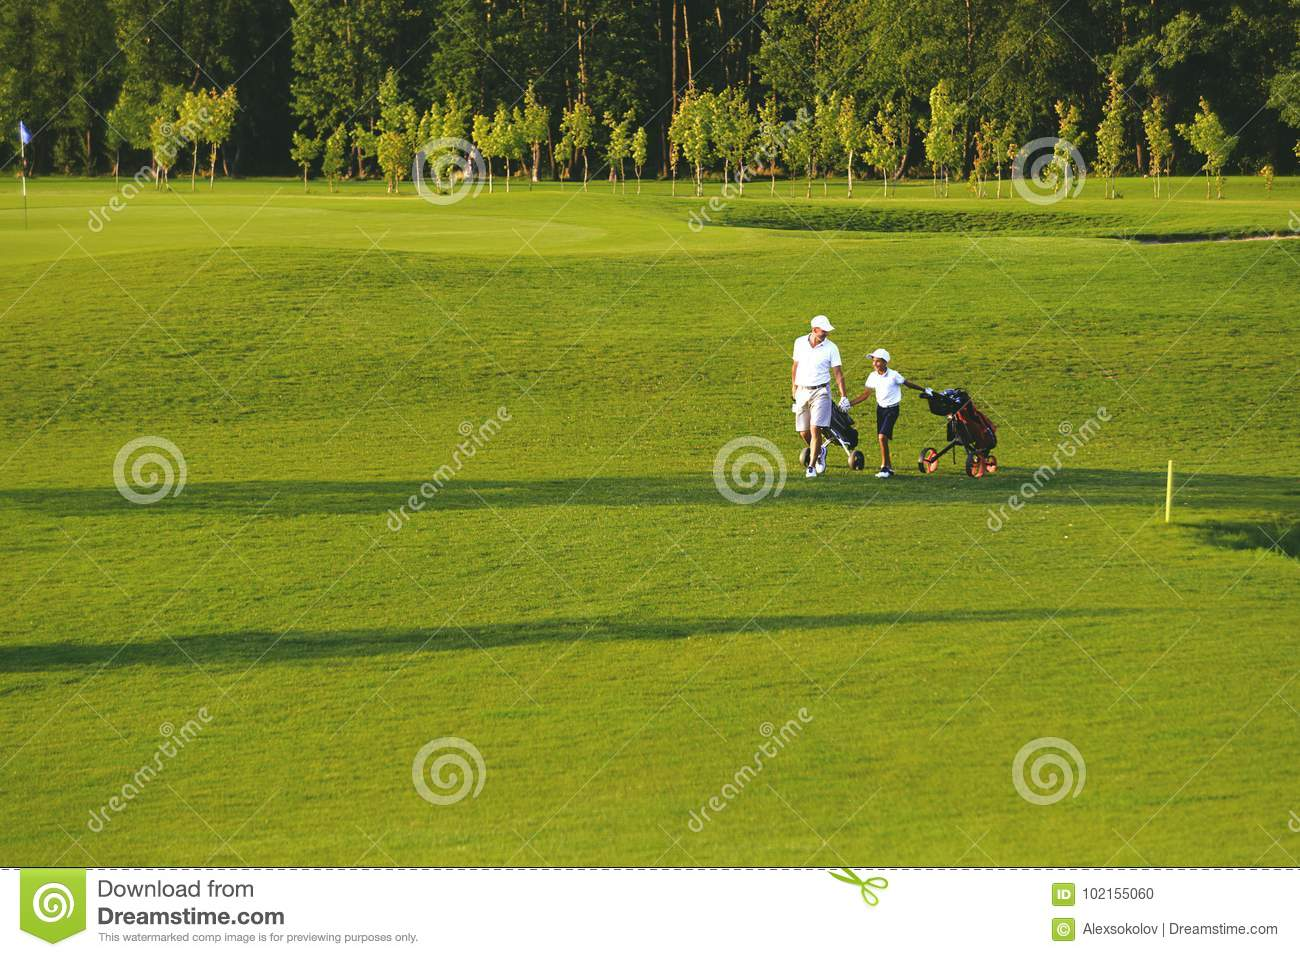 Man with his son golfers walking on golf course